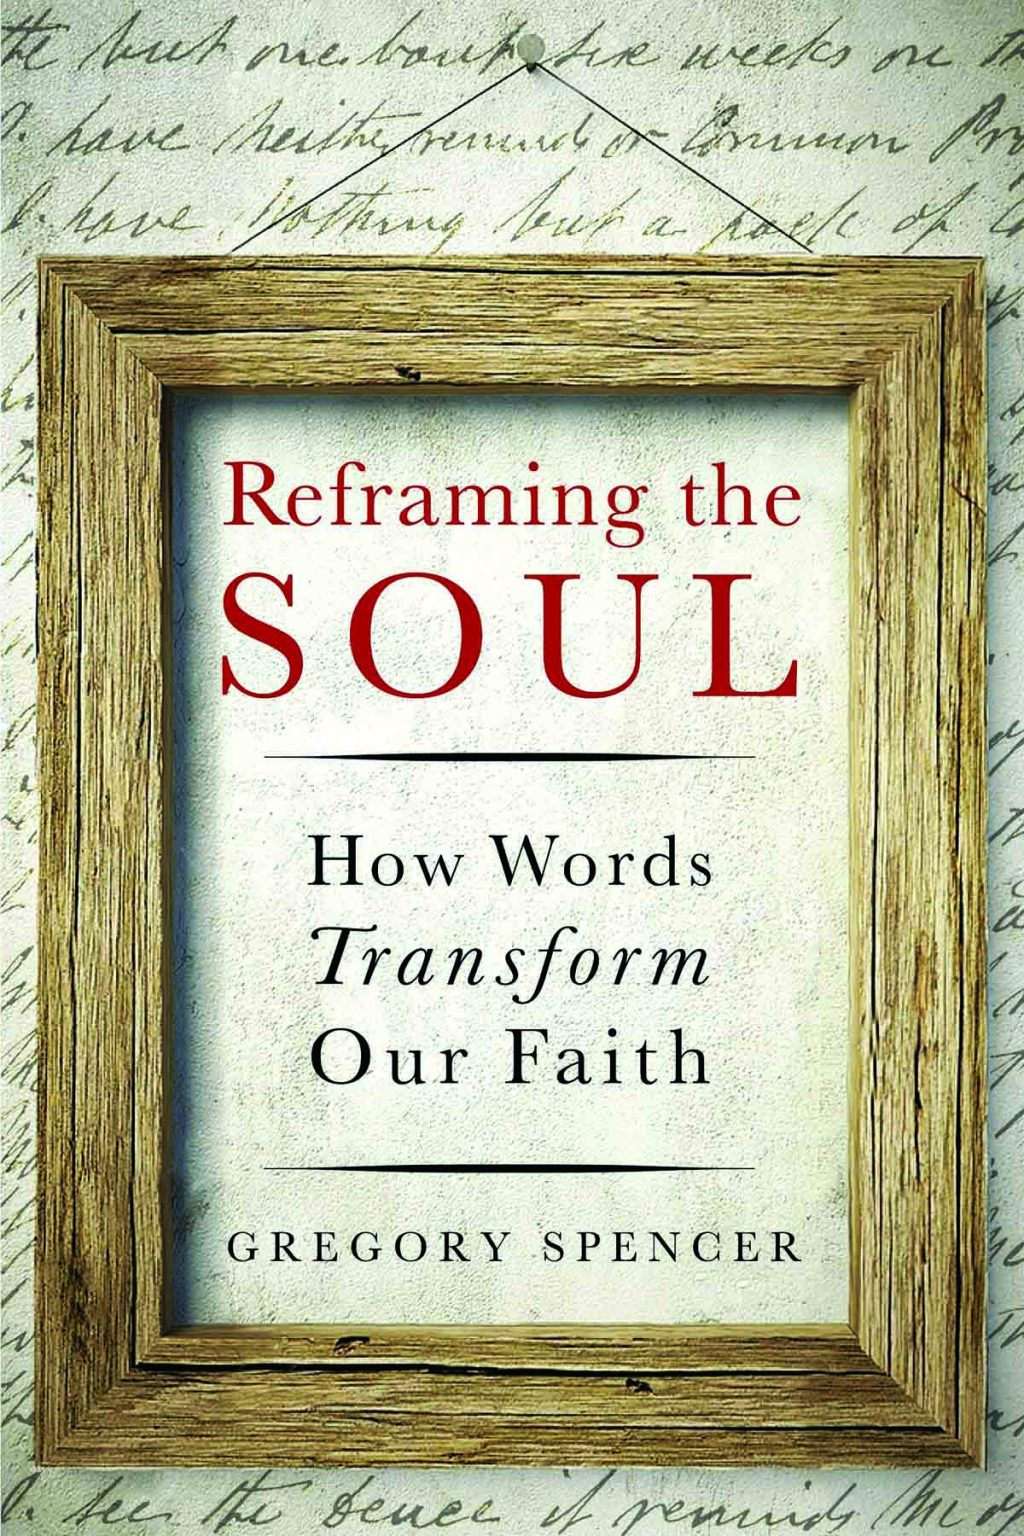 Gregory Spencer. Reframing the Soul: How Words Transform Our Faith. Abilene, Texas.: Leafwood Publishers, 2018. 256 pages.